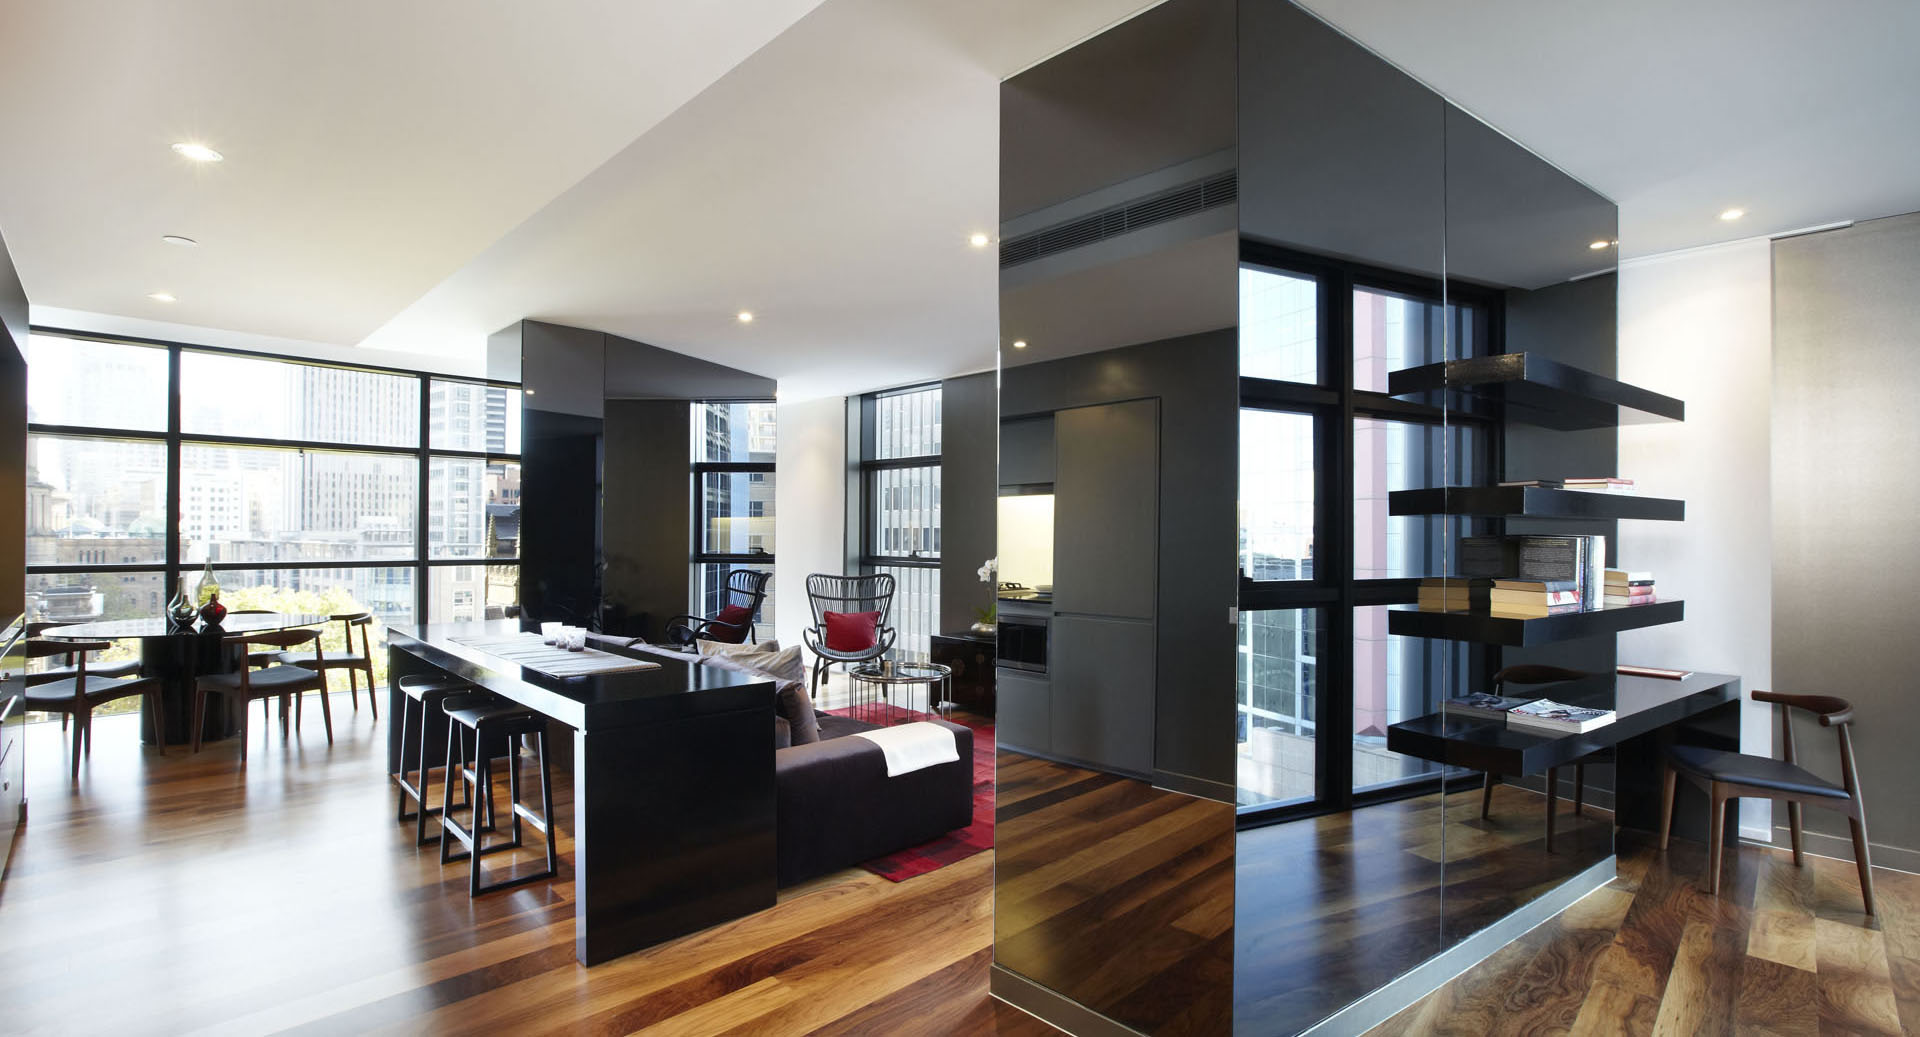 Contemporary apartment designs in sydney idesignarch for Good interior design for home